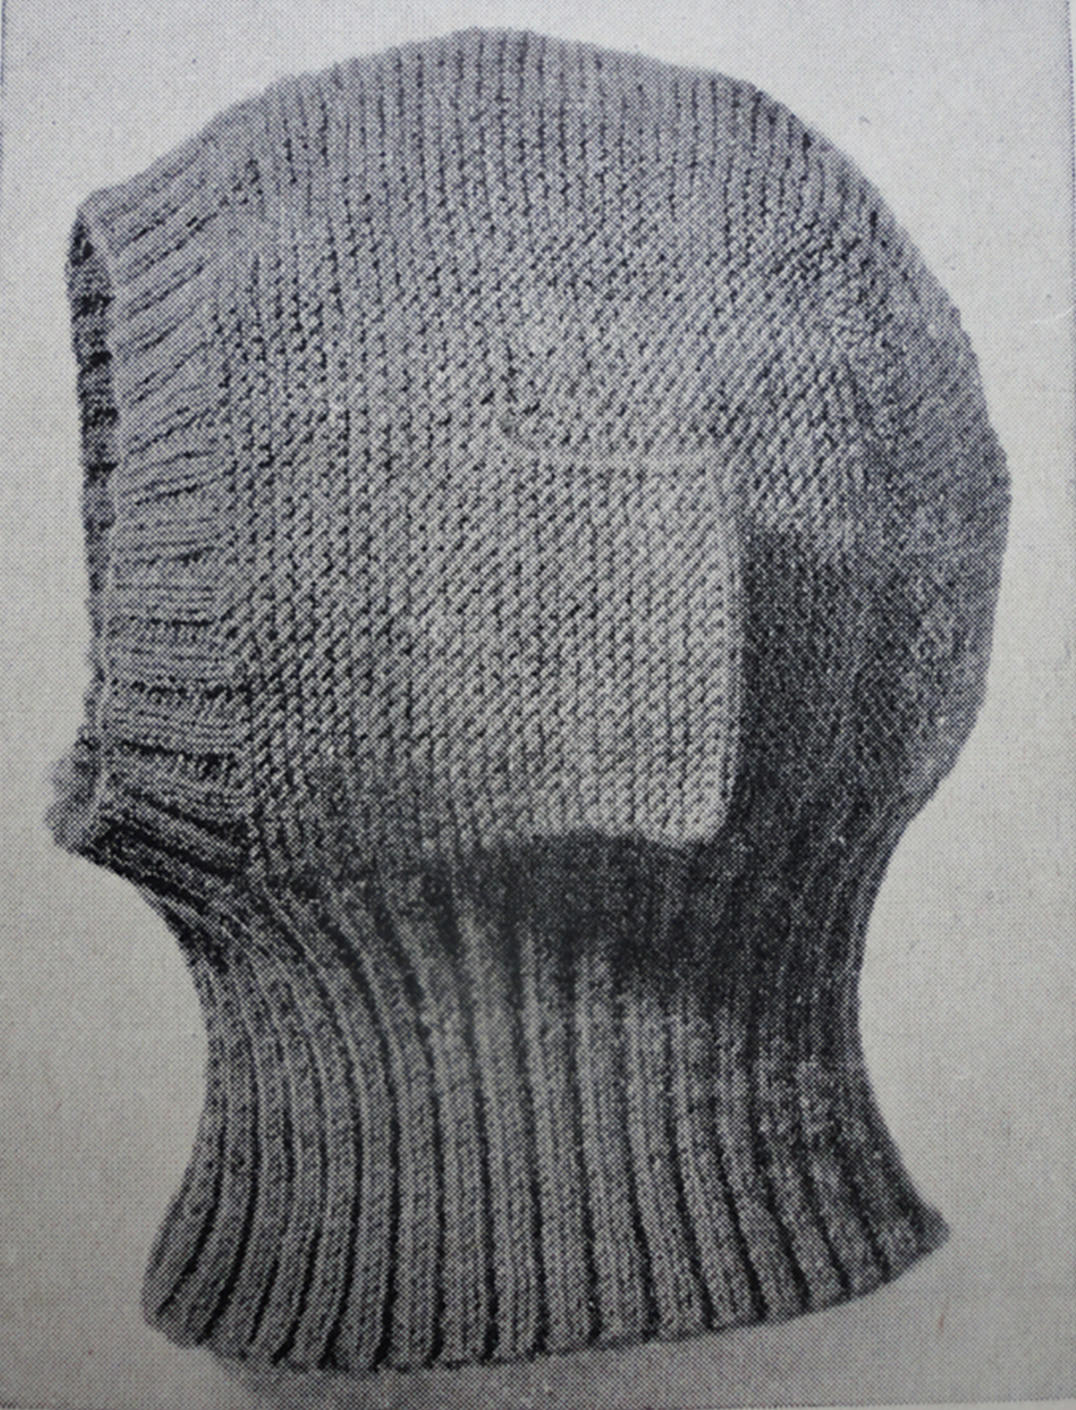 A knitted balaclava helmet with adjustable earflaps, worn during the Crimean War and reappropriated during world wars I and II, 1941. Public domain image